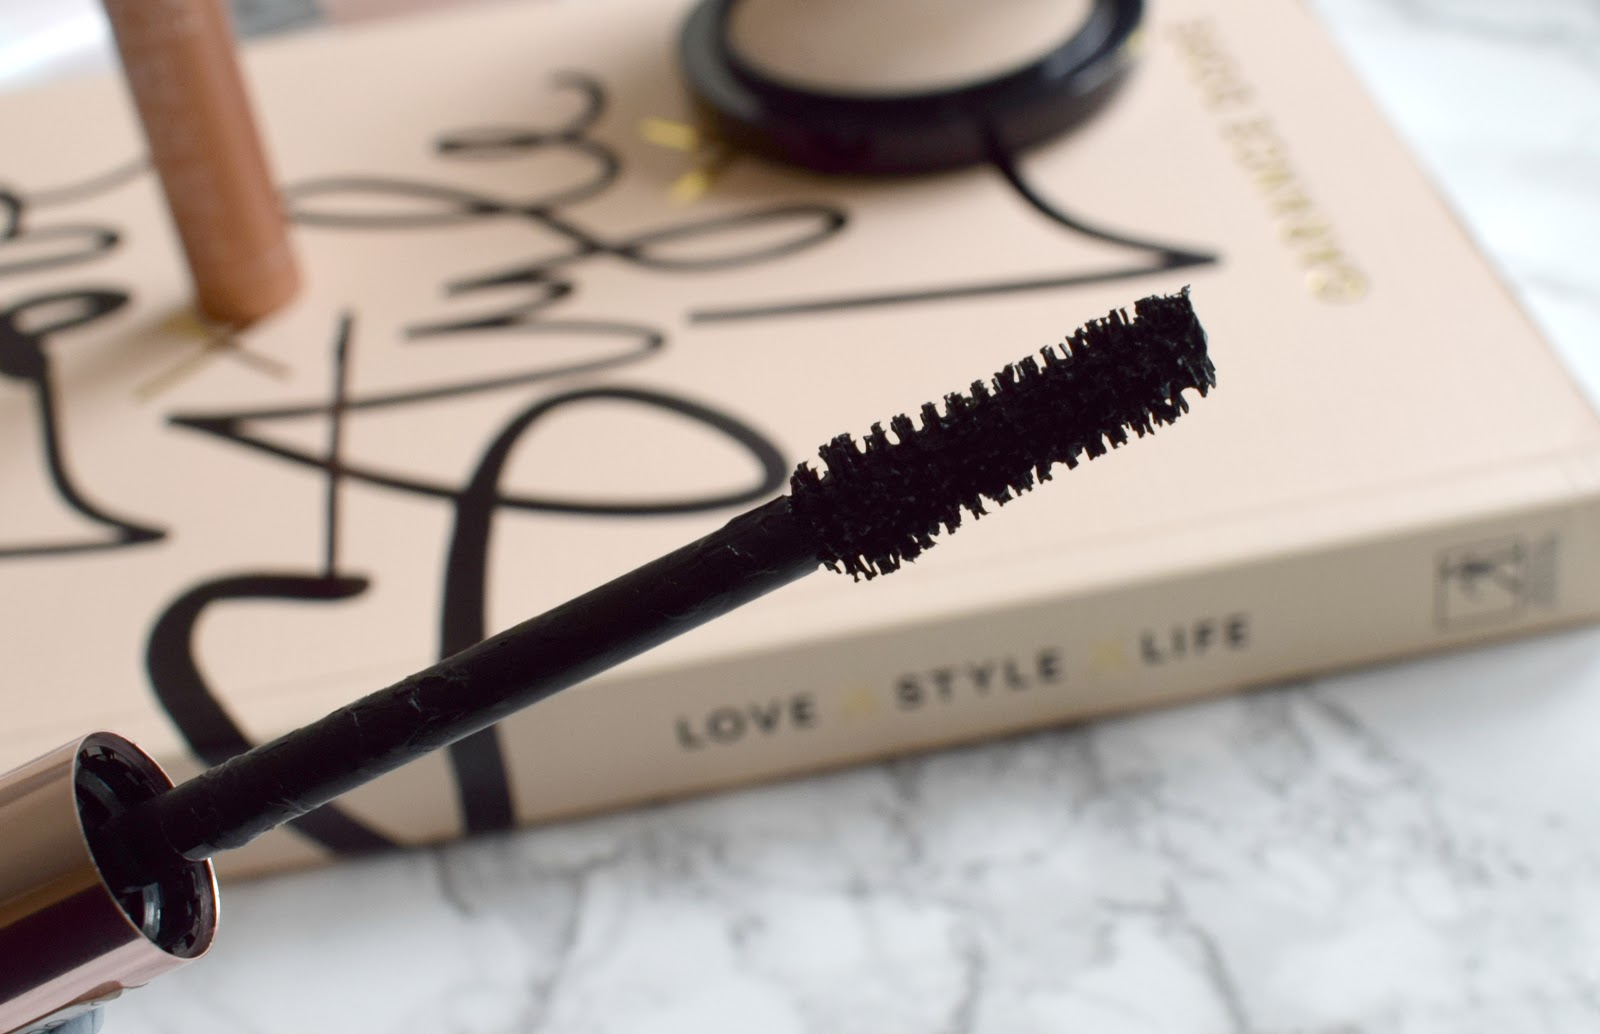 Loreal lash paradise mascara review beauty blogger uk wand close up